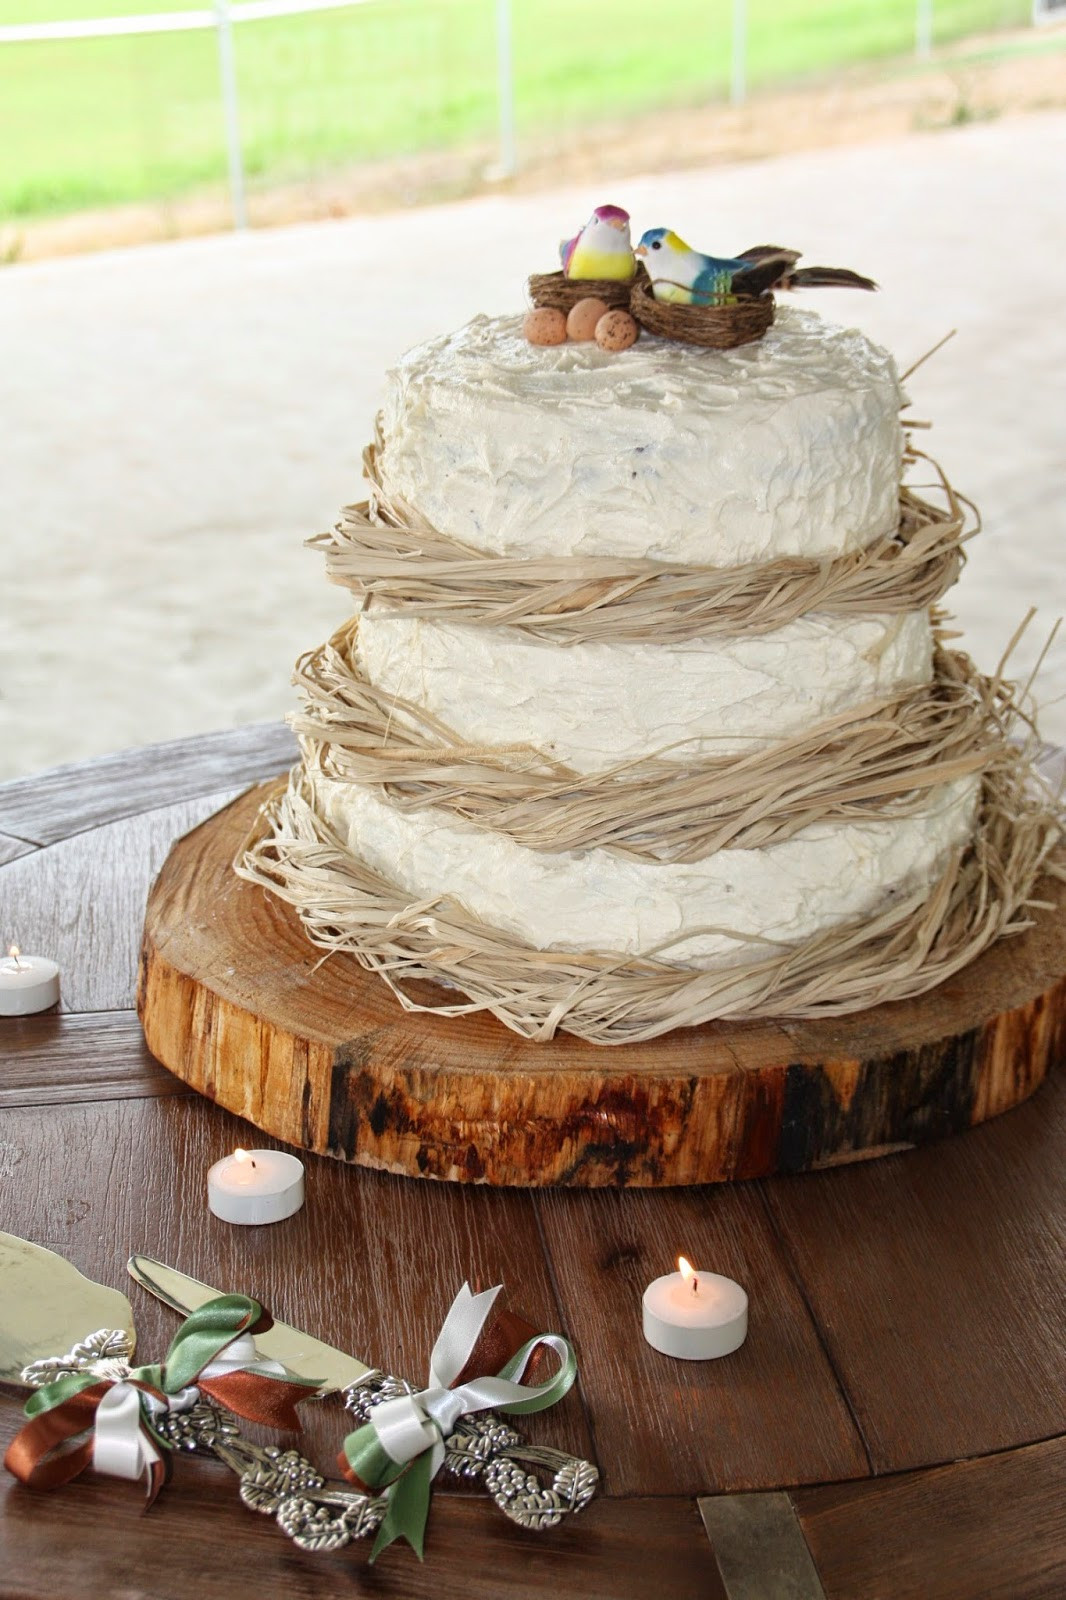 Rustic themed Wedding Cakes 20 Ideas for Rustic Wedding Cakes